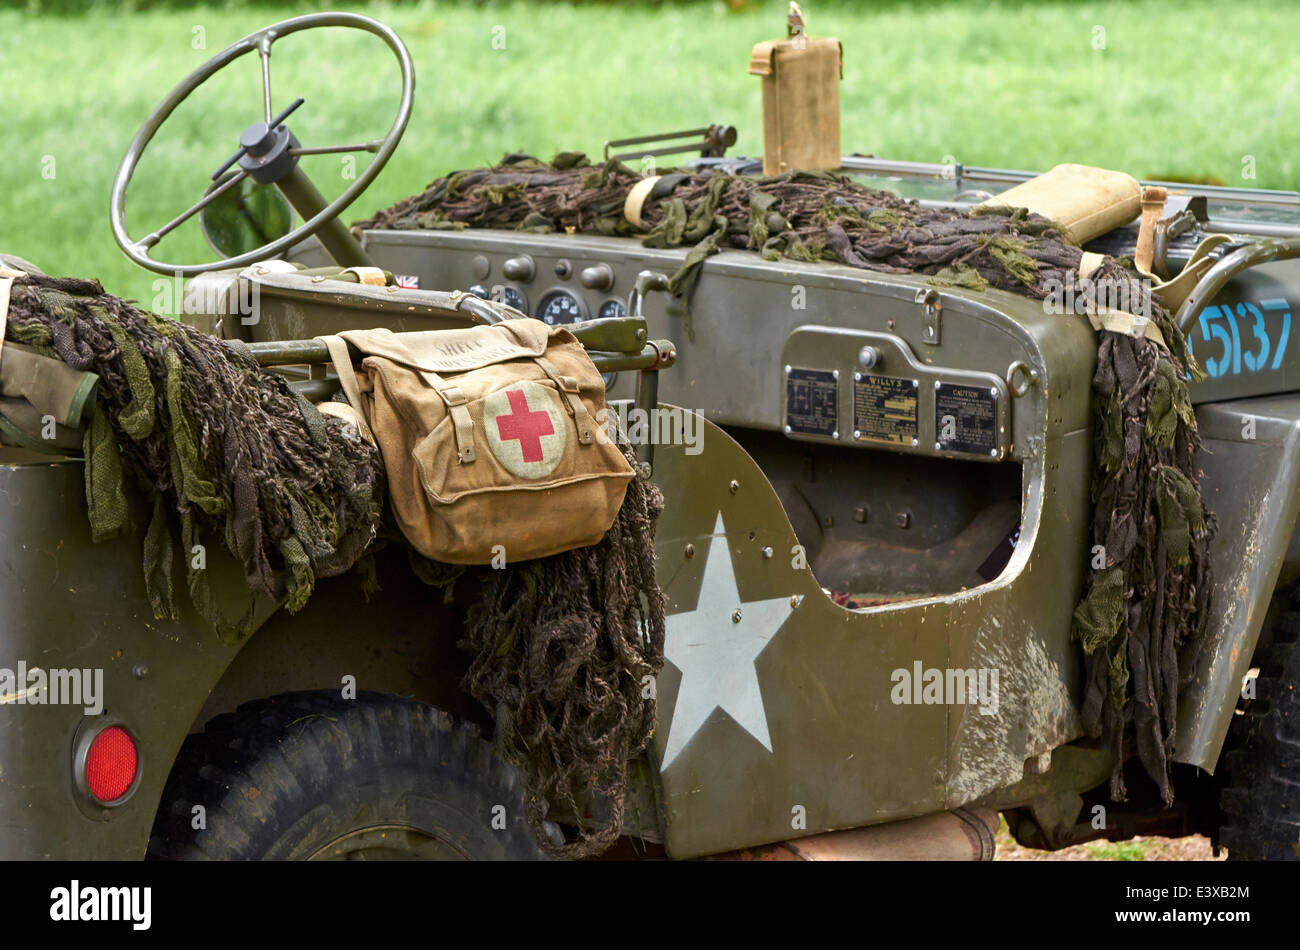 Army netting photos army netting images alamy for Motor vehicle crashes cost american taxpayers over